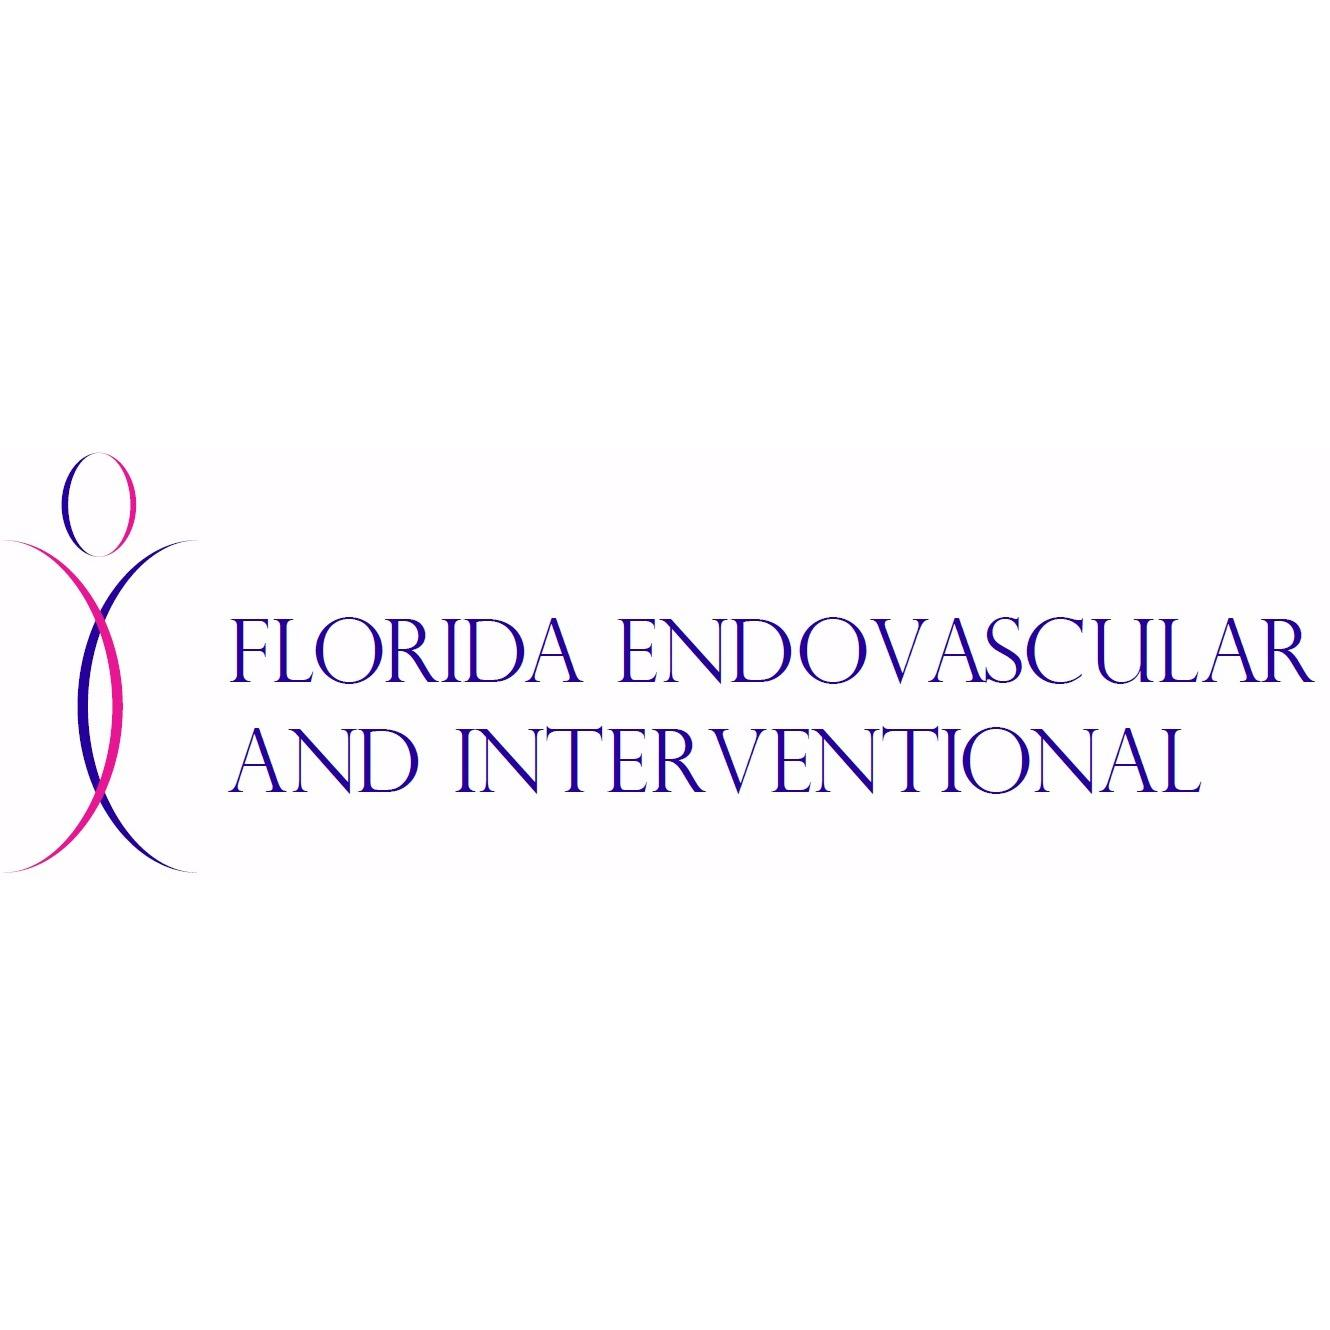 Florida Endovascular and Interventional